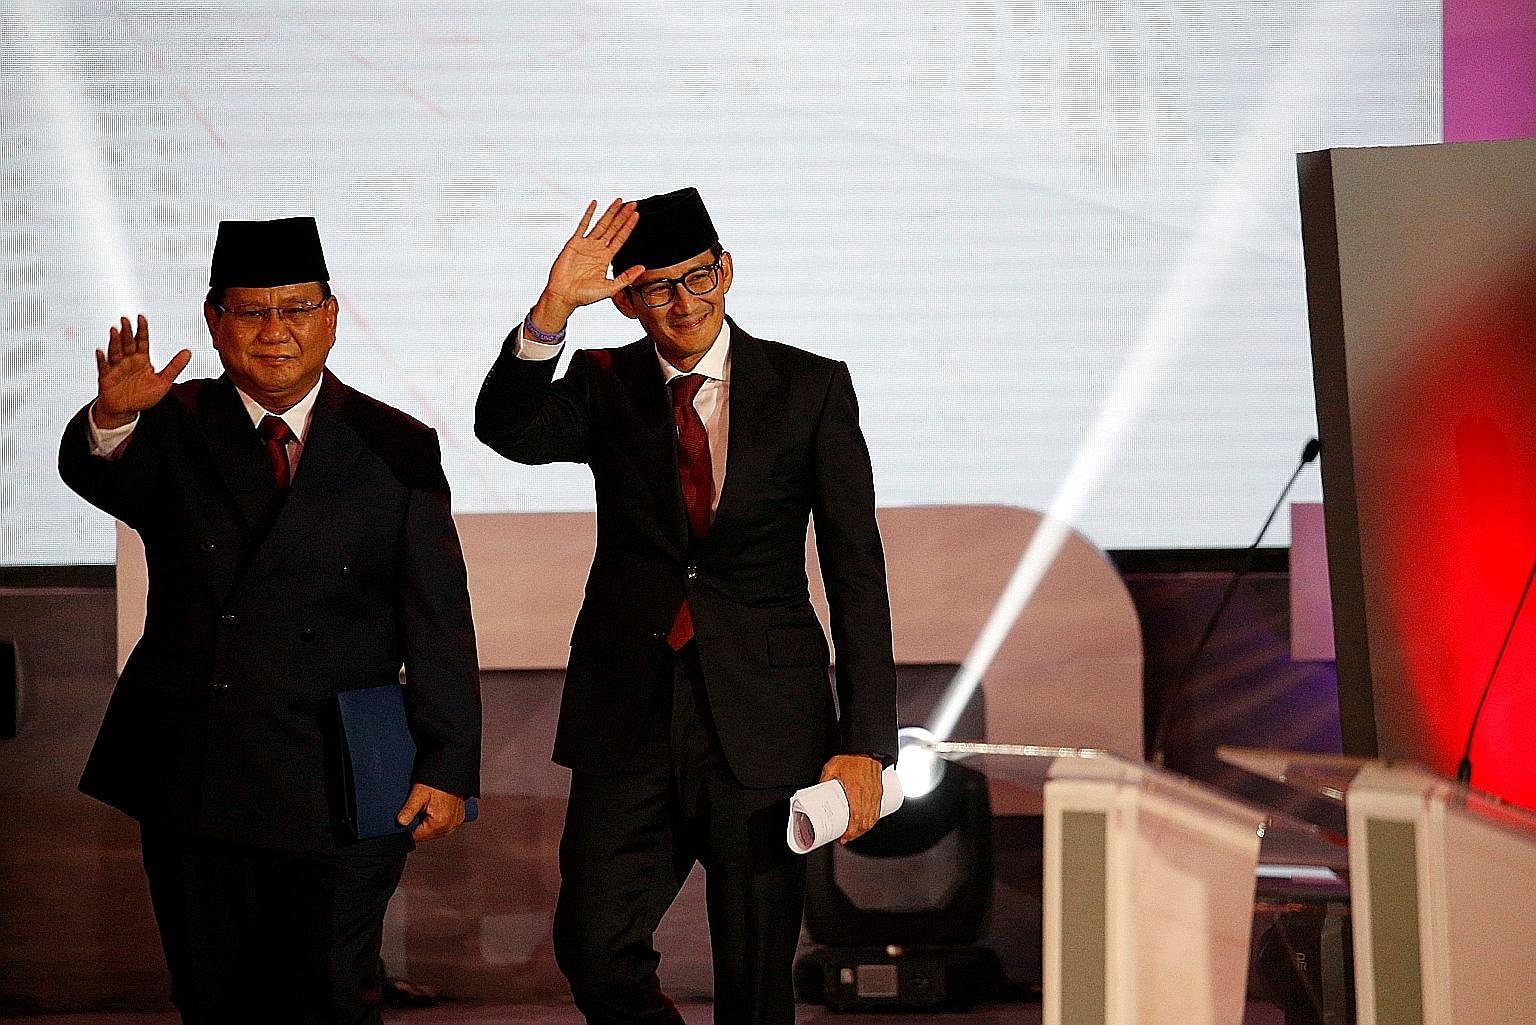 Indonesia's presidential candidate Prabowo Subianto (far left), seen here with his running mate Sandiaga Uno, says he is targeting achieving self-sufficiency in food, energy and water for the sprawling archipelago.